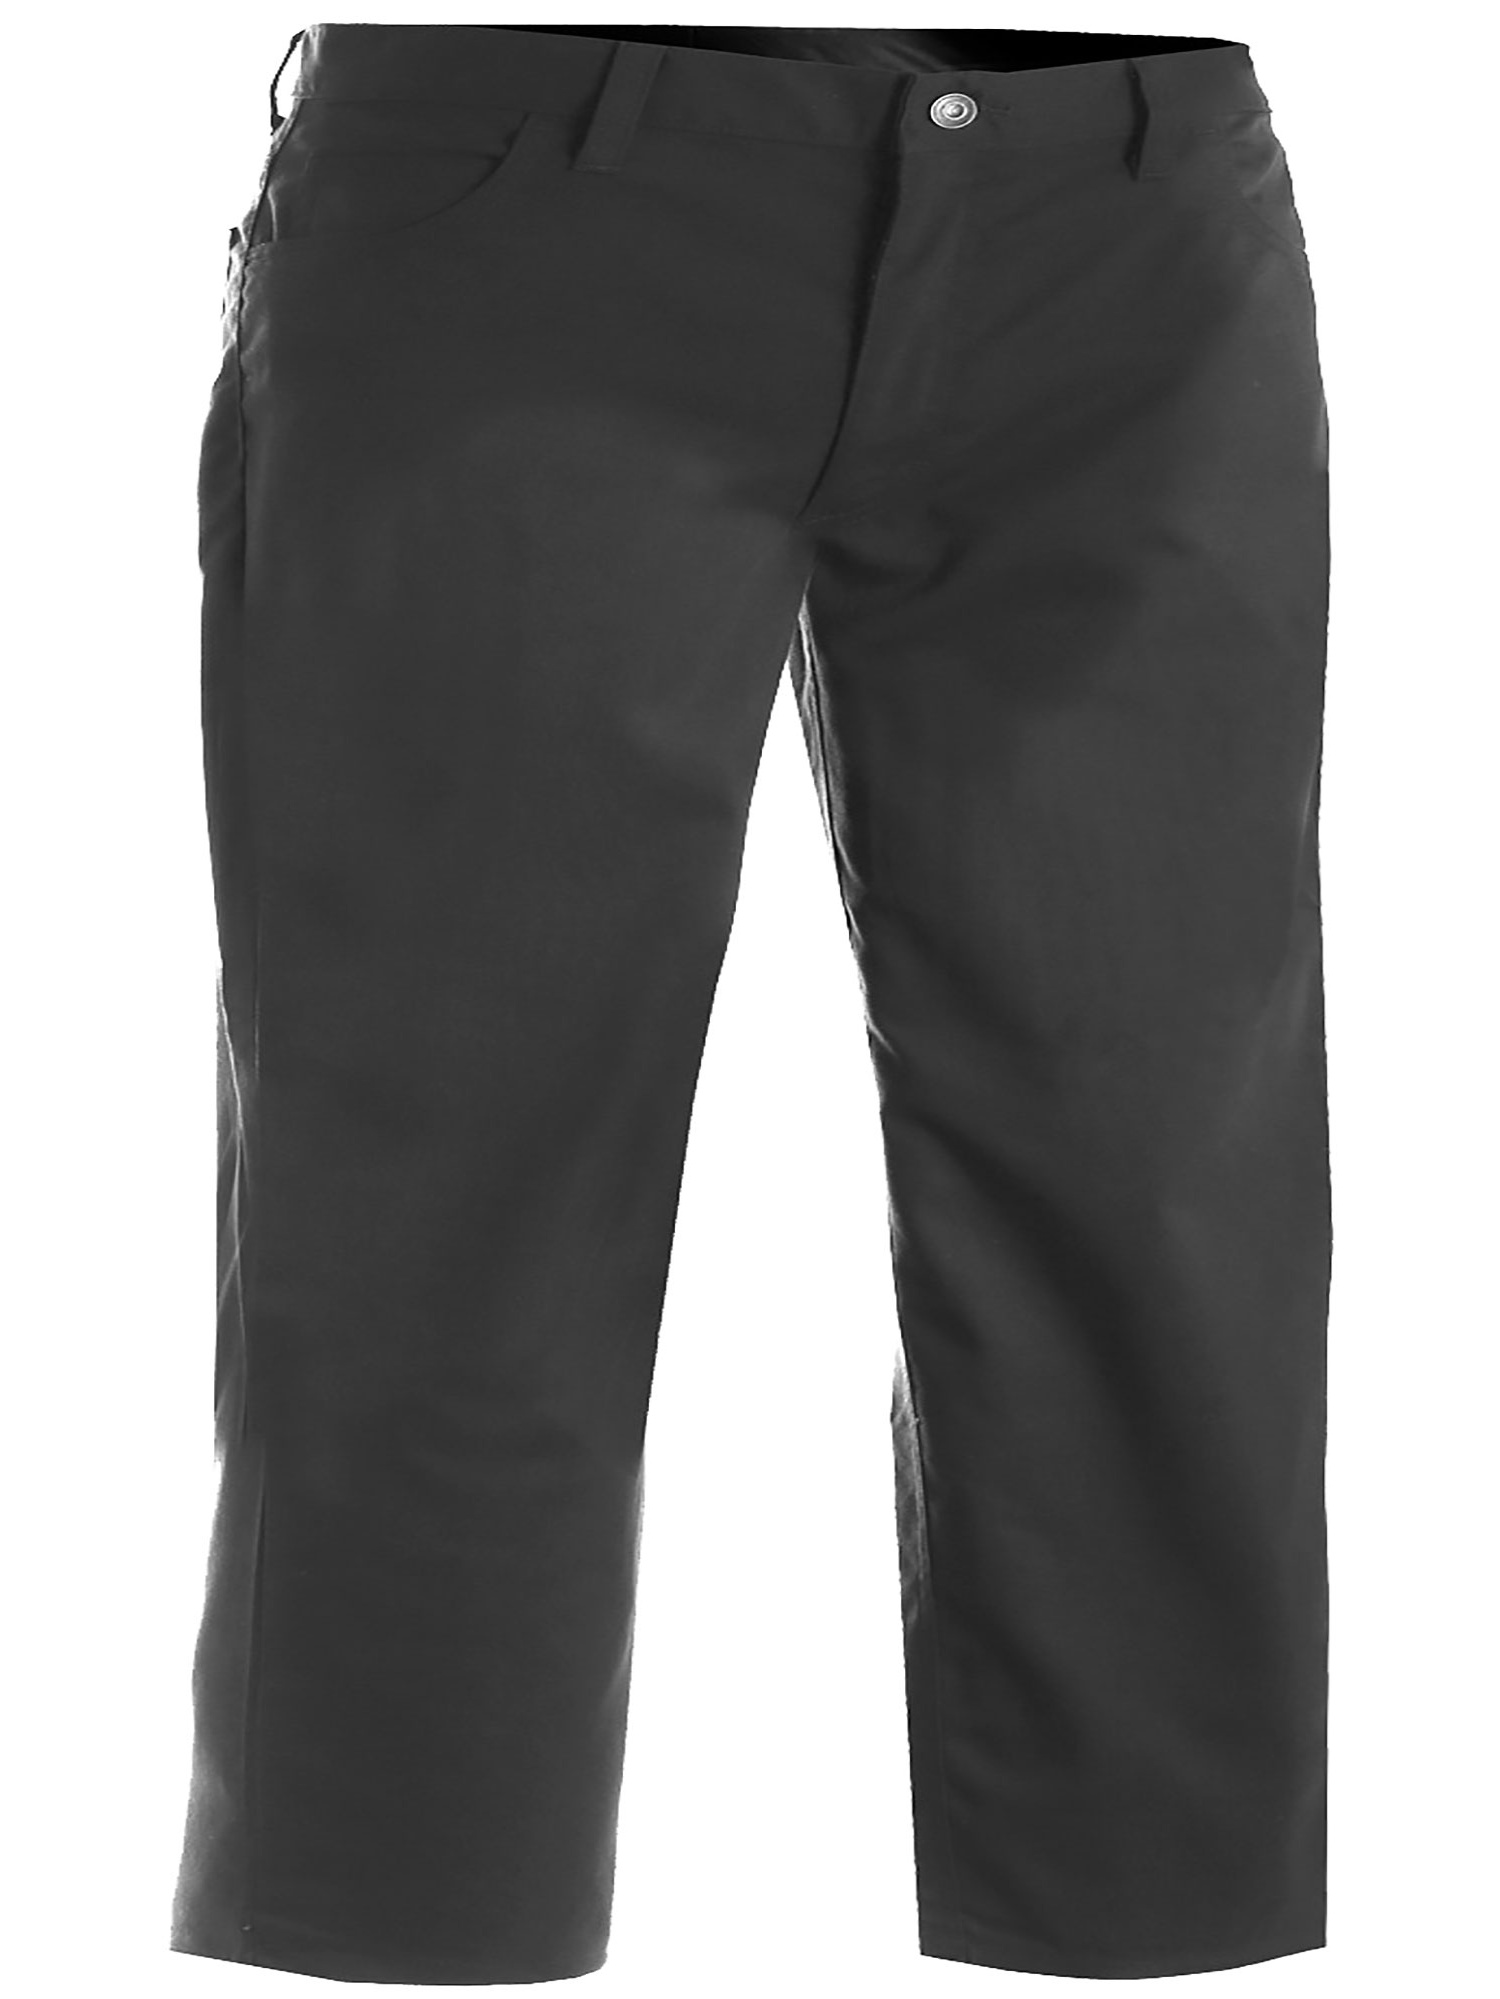 BLACK MENS SILVER CHOICE RELAXED FIT ZIP POCKET TROUSERS GREAT FOR SCHOOL